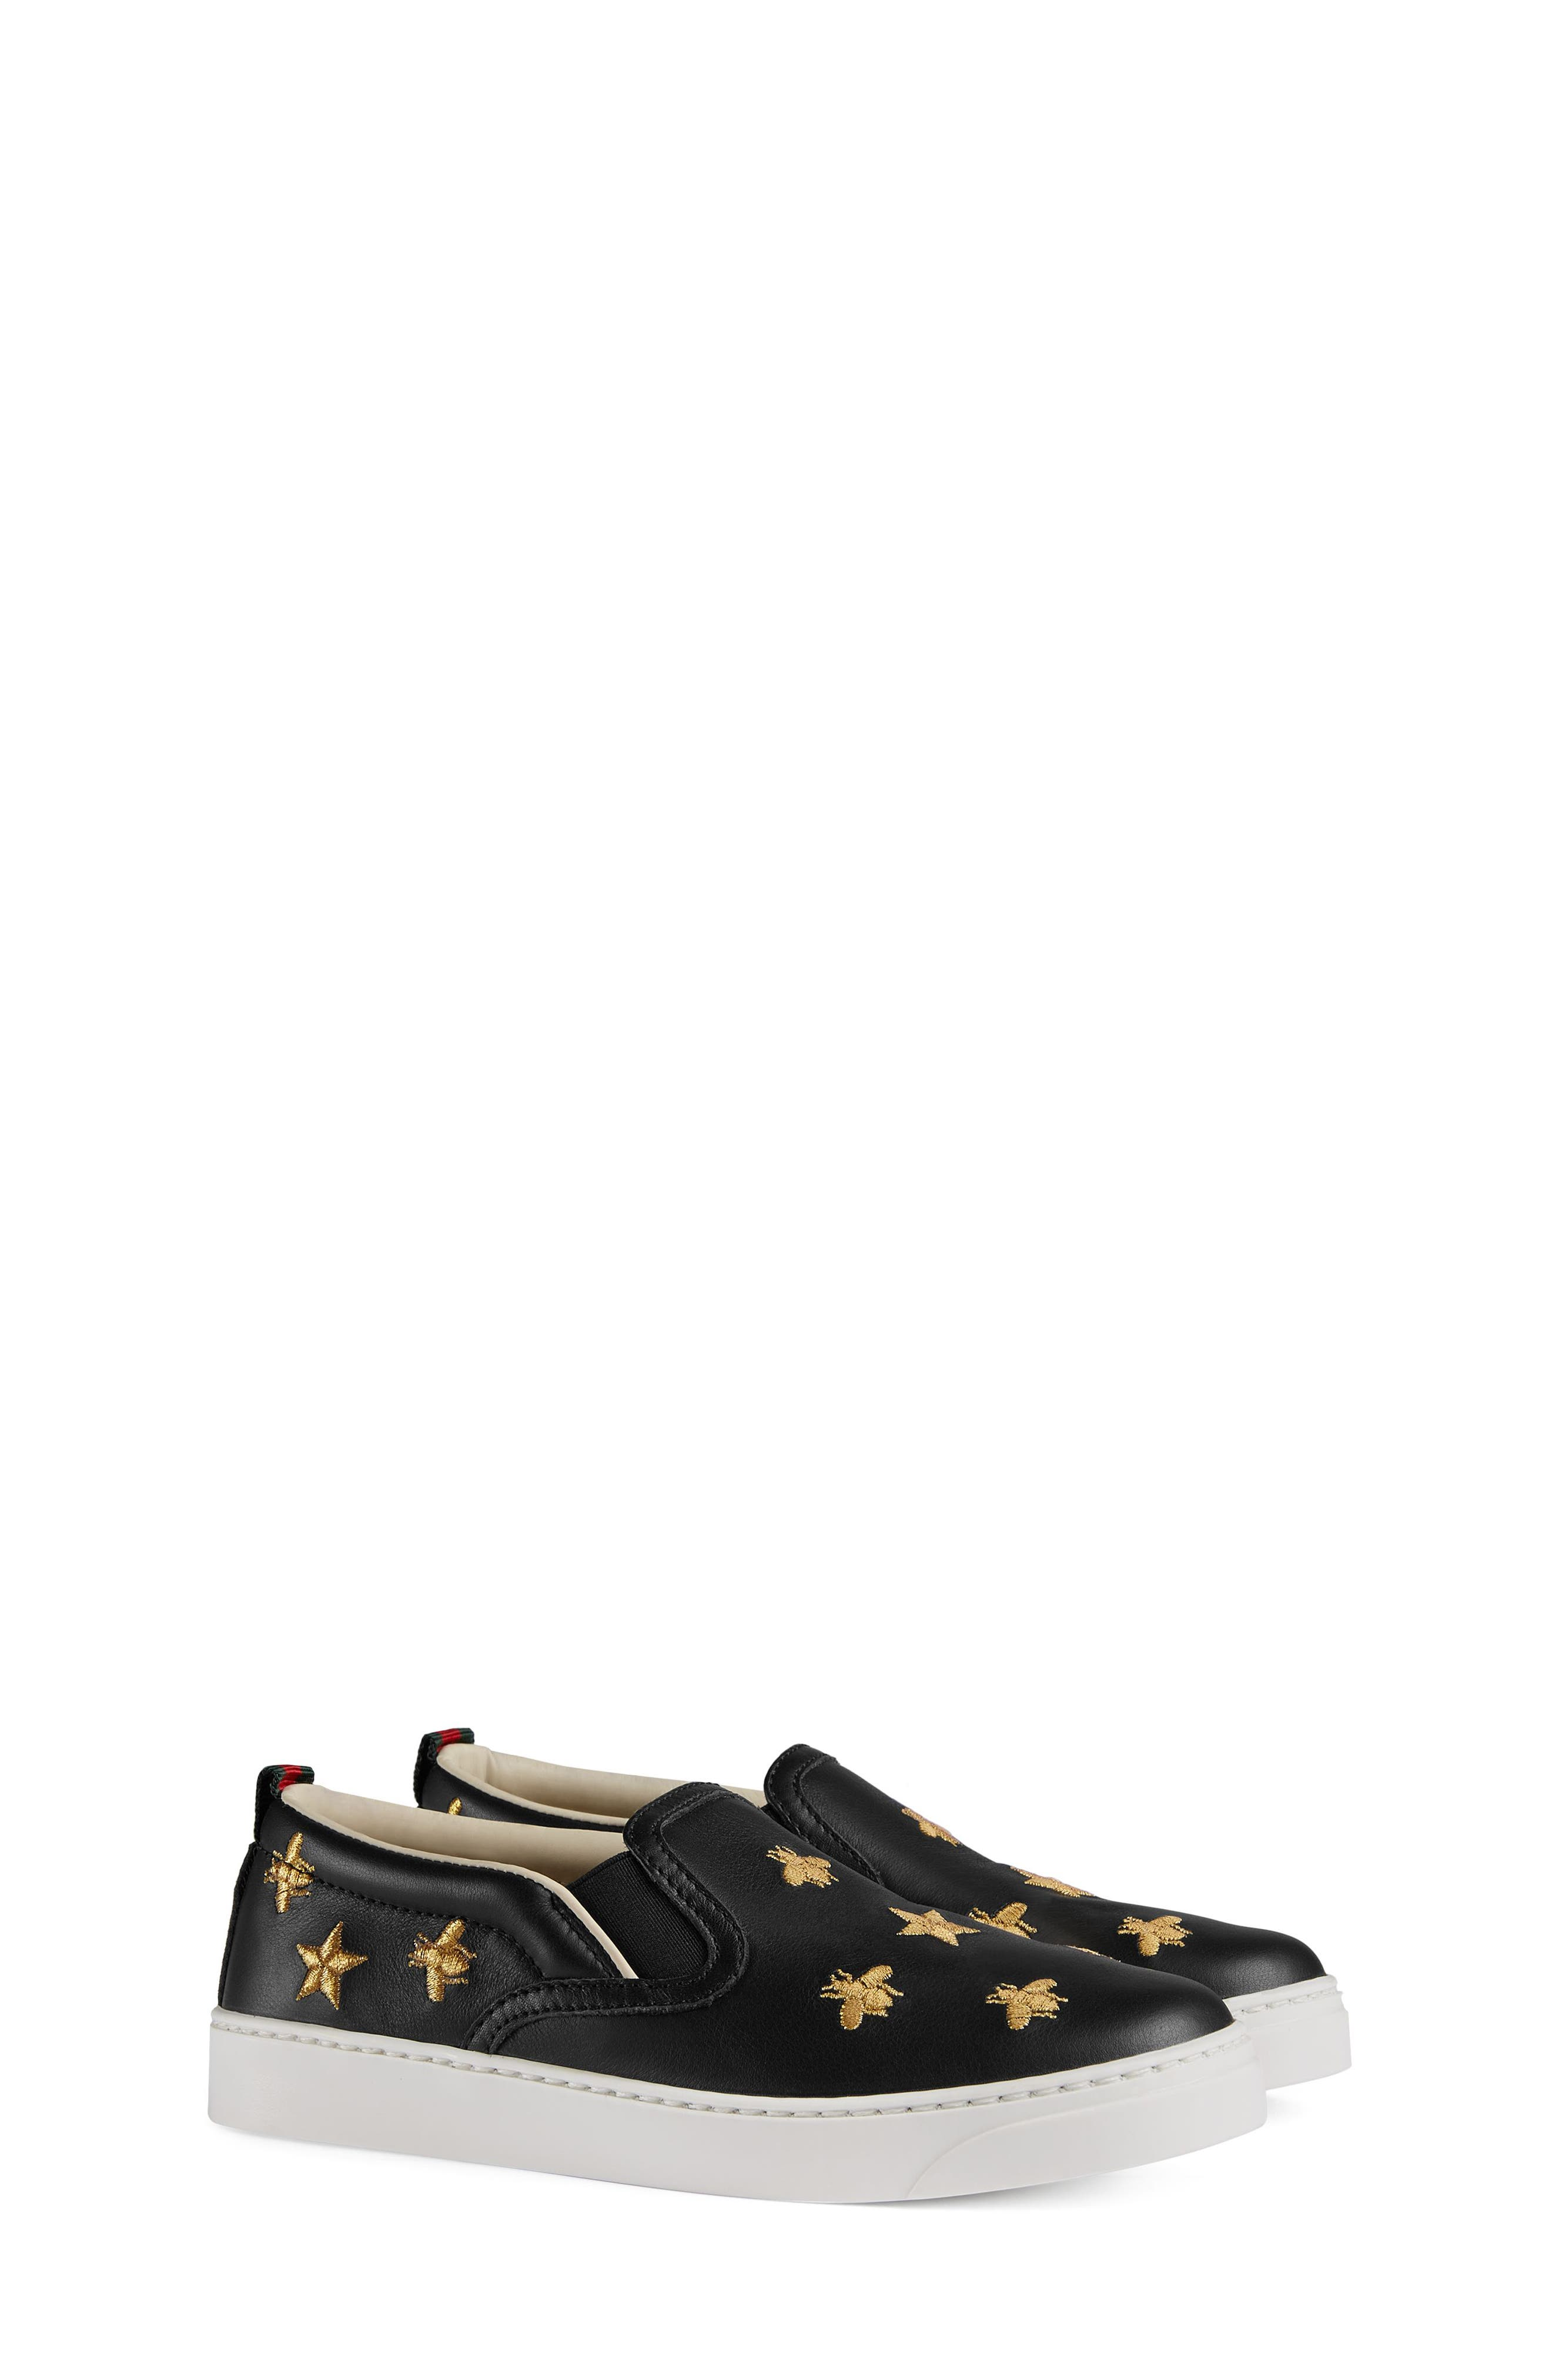 Gucci Dublin Bees and Stars Slip-On